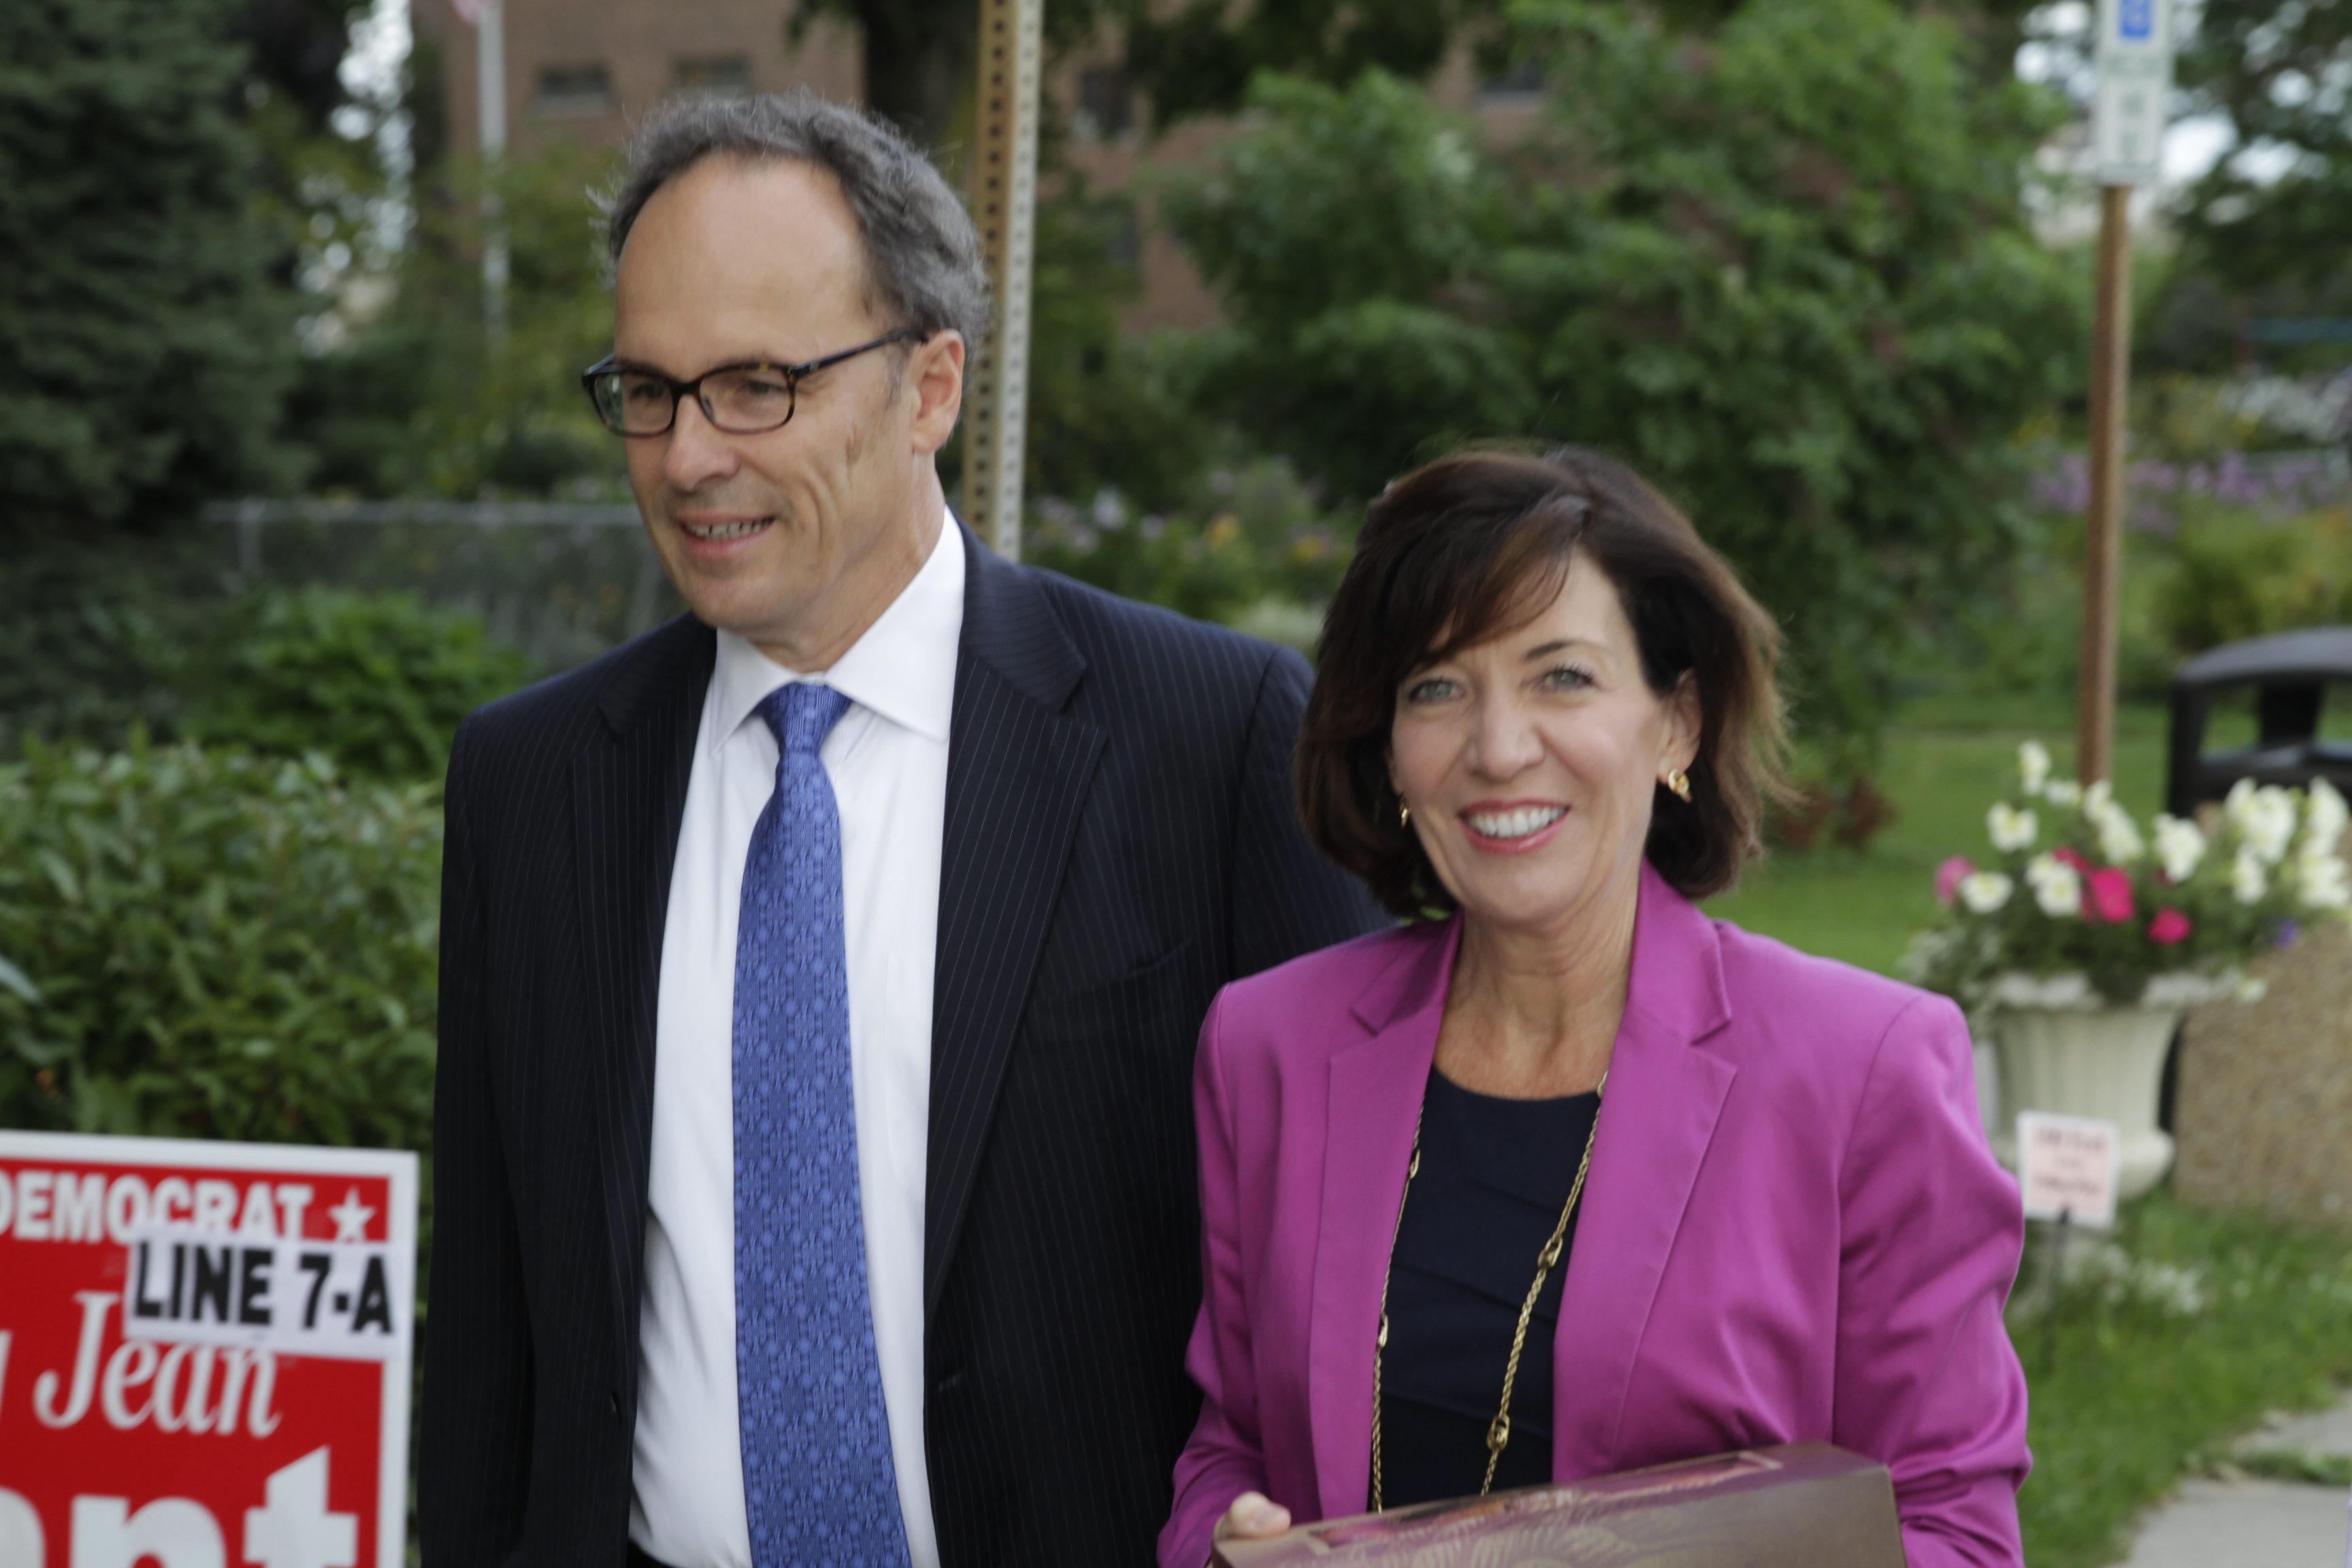 U.S. Attorney William J. Hochul Jr. is recusing himself from the investigation of the political activities of G. Steven Pigeon. Part of the reason is that Hochul's wife, Lt. Gov. Kathy Hochul, has worked with Pigeon, a top adviser for Gov. Andrew M. Cuomo.